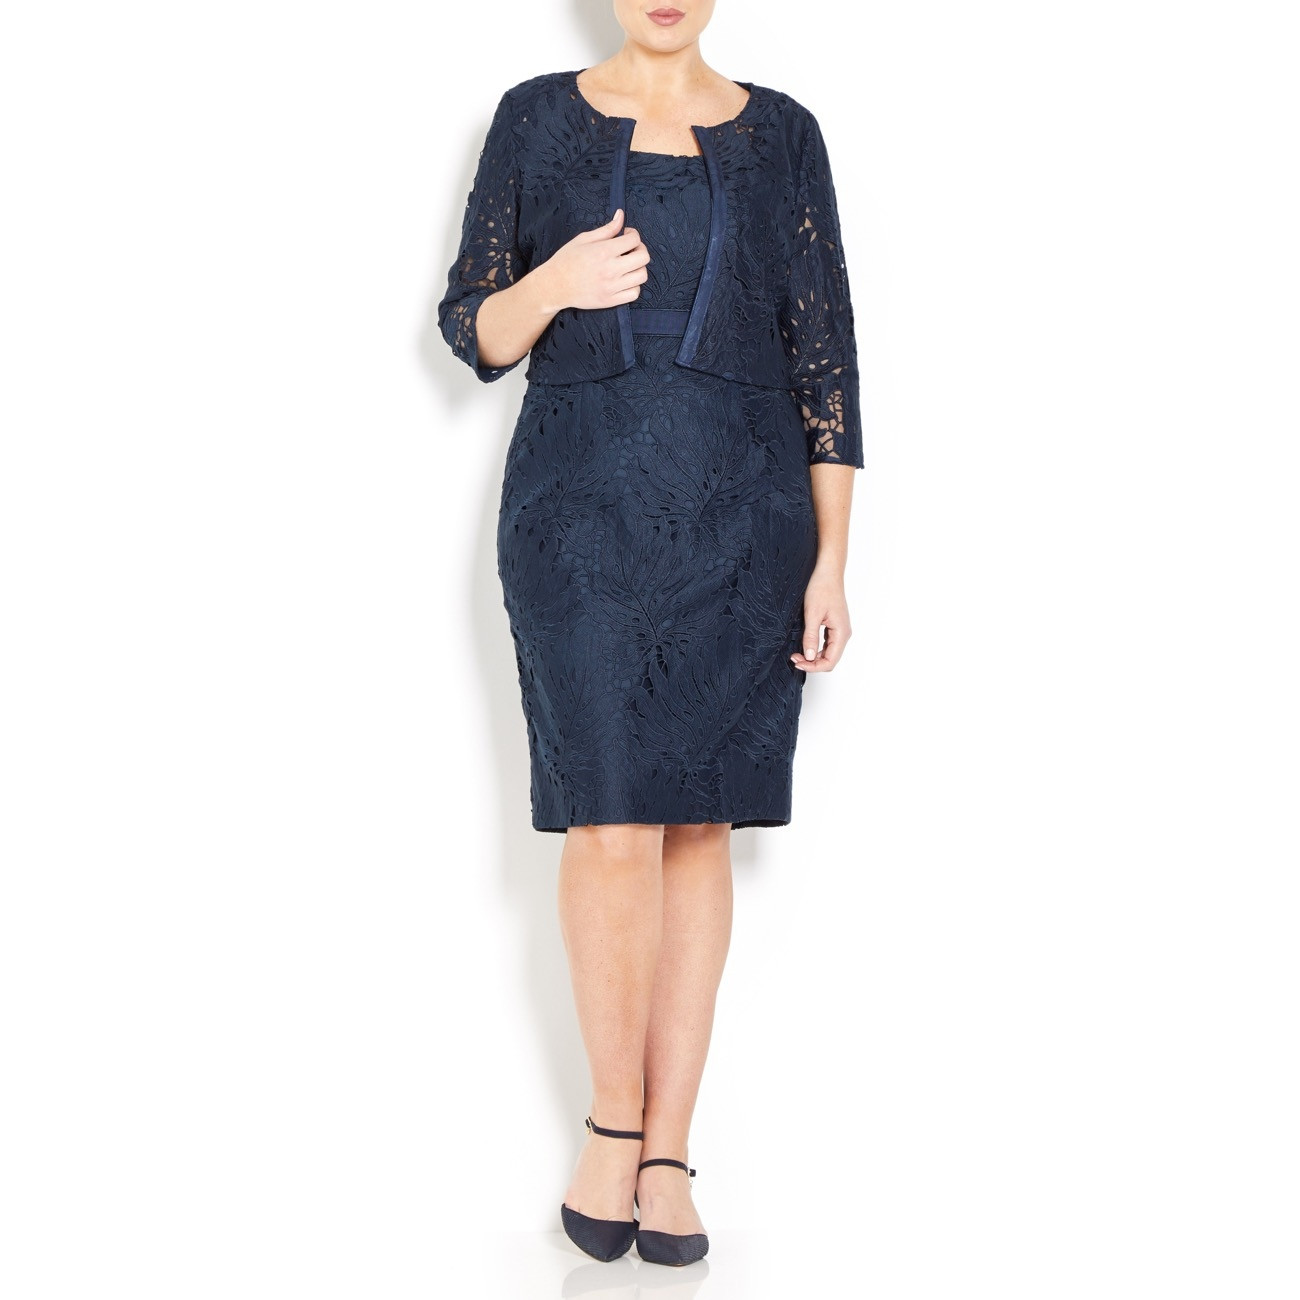 Cabotine Navy Lace Dress and Jacket